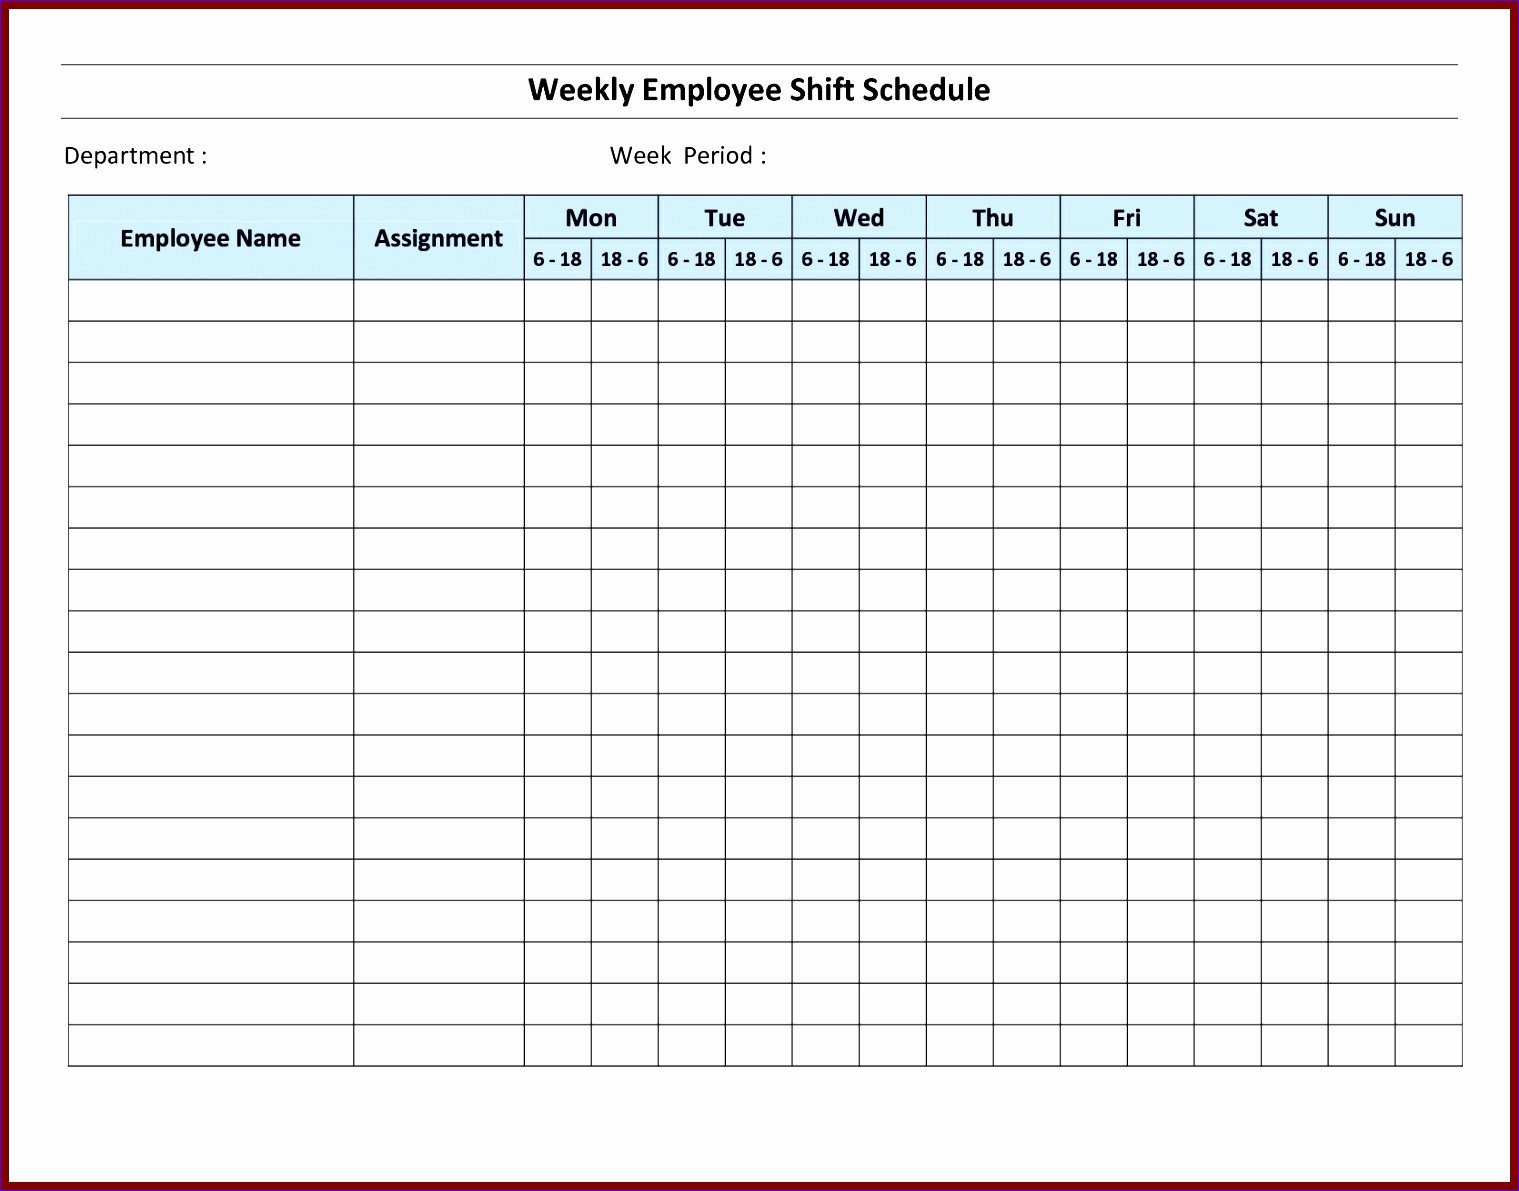 Monthly Schedule Template Excel Lovely 7 Monthly Staff Schedule Template Excel Exceltemplates